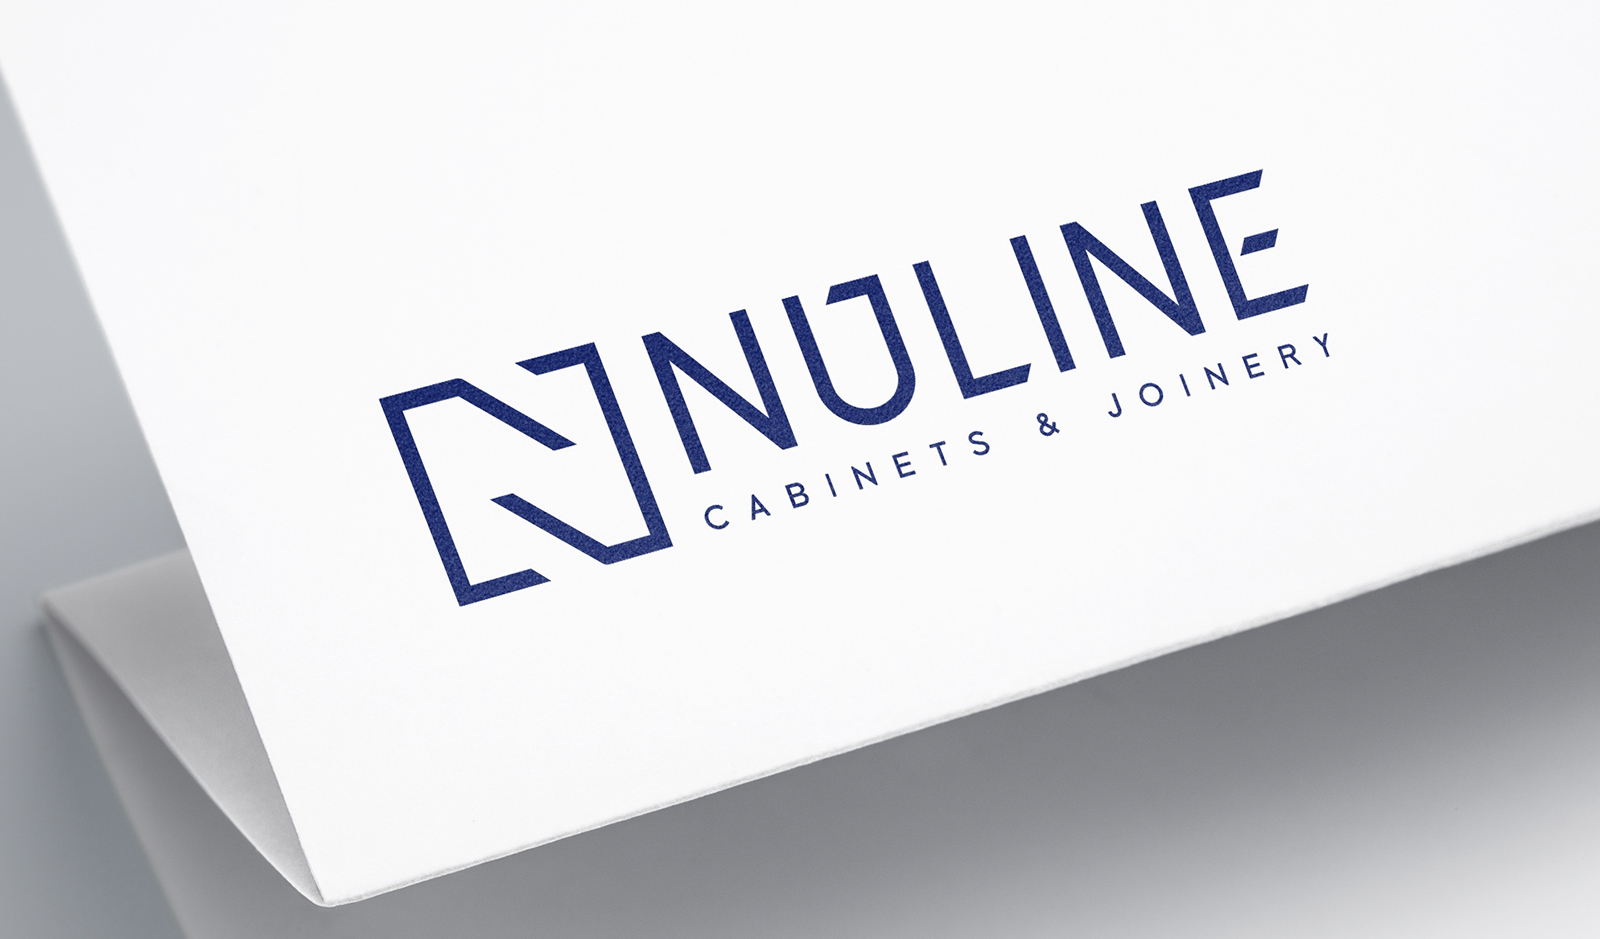 Nuline Cabinets